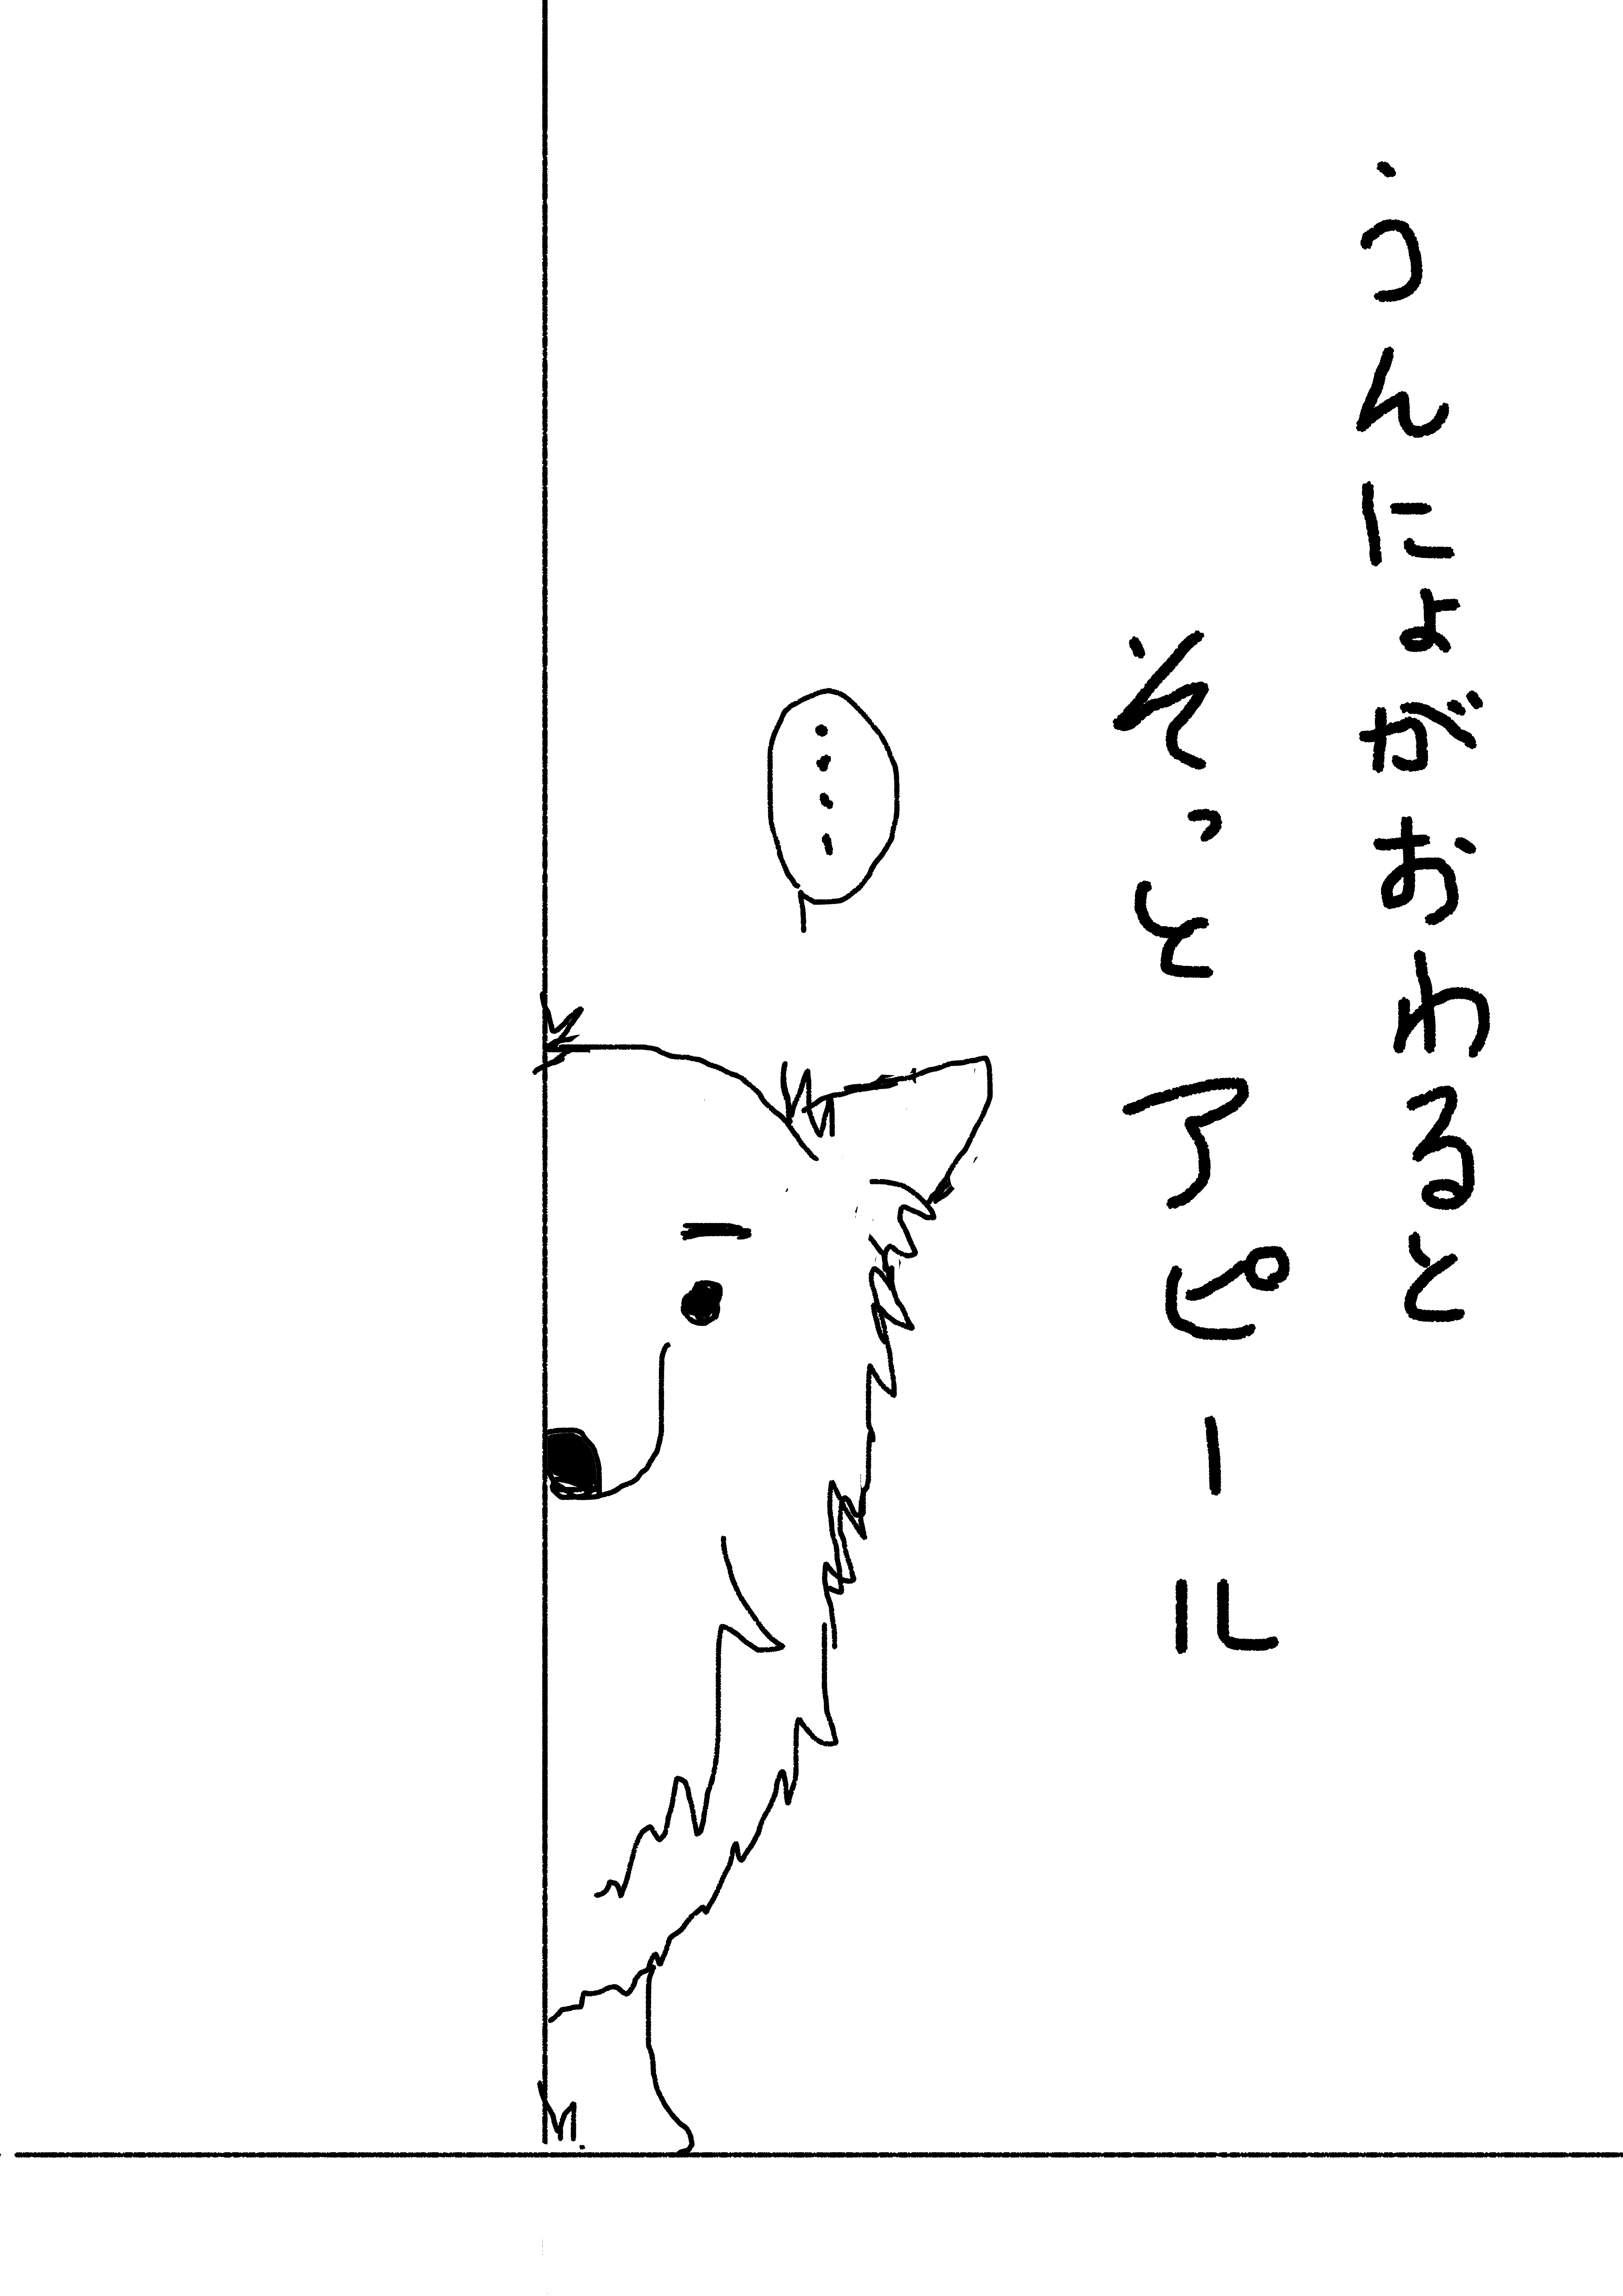 20160509.png